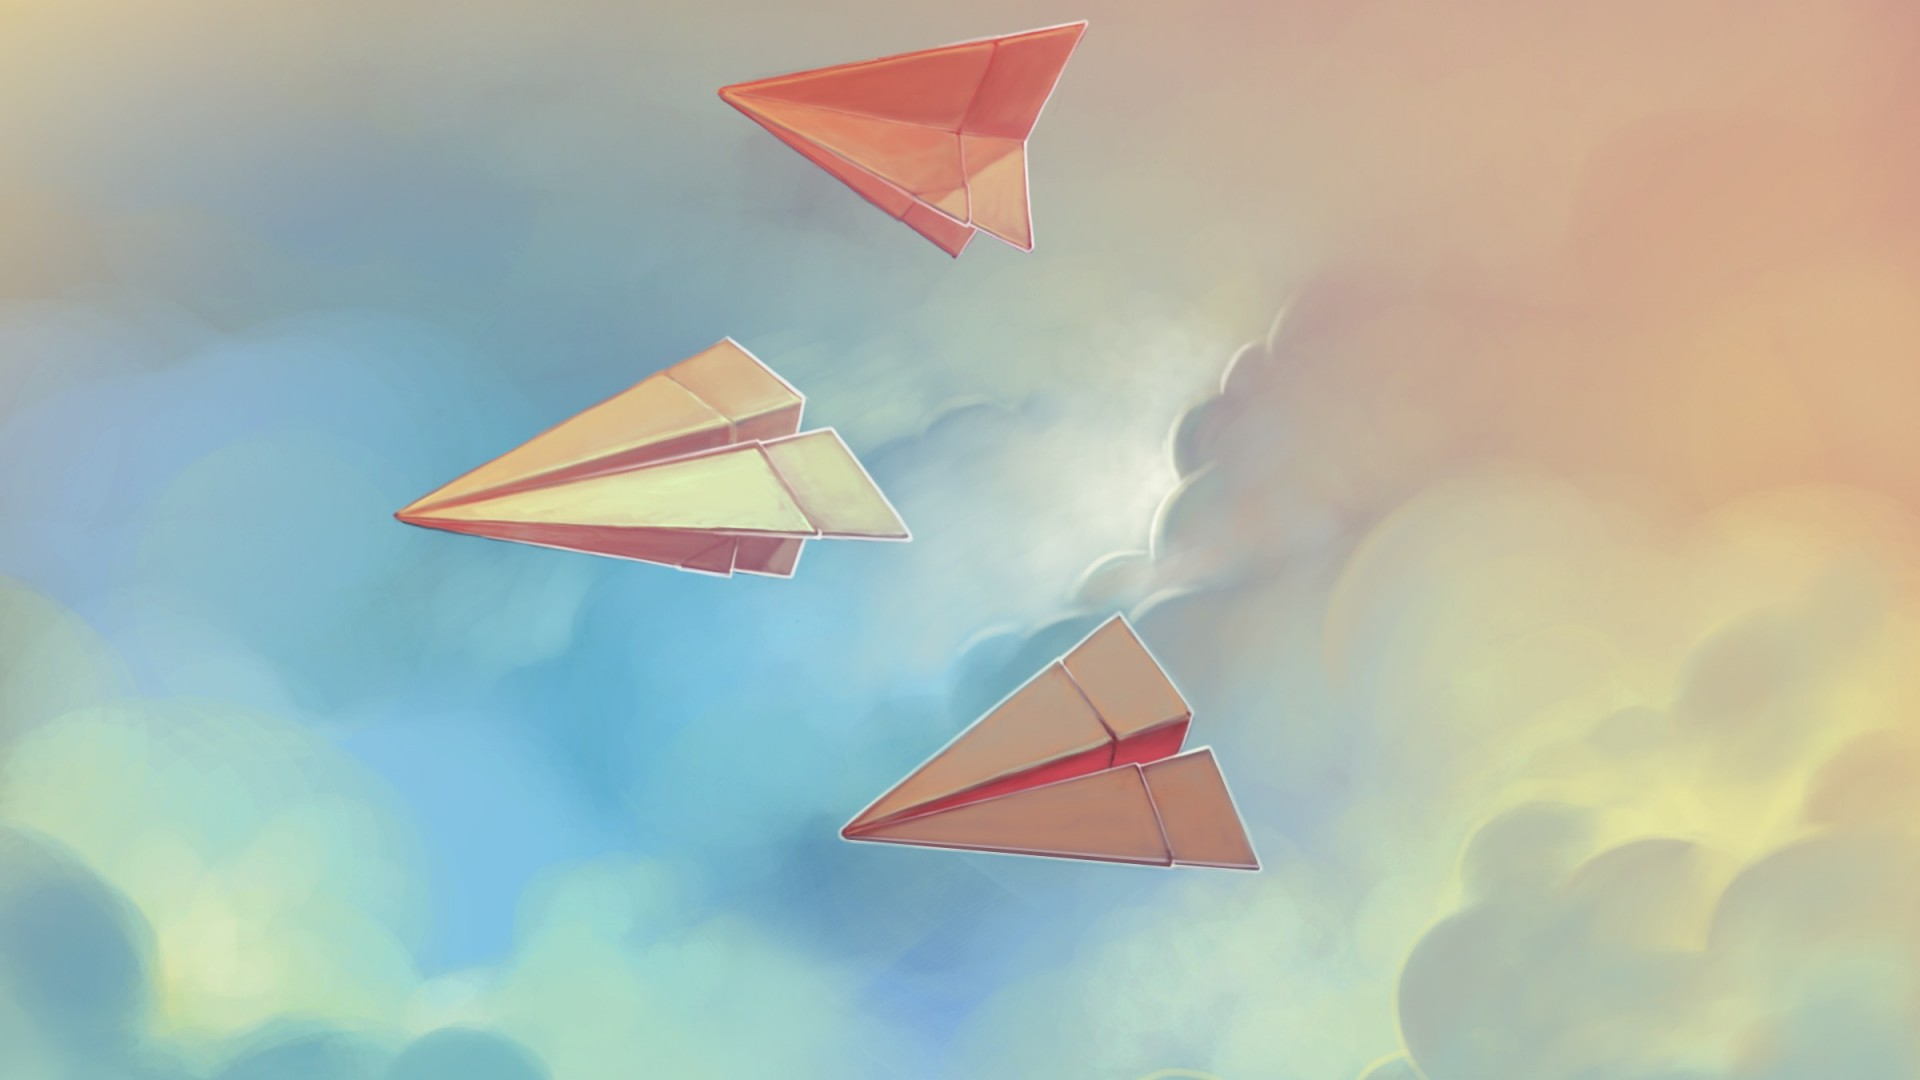 artwork-paper-plane-1920x1080-1920×1080-wallpaper-wp3402615